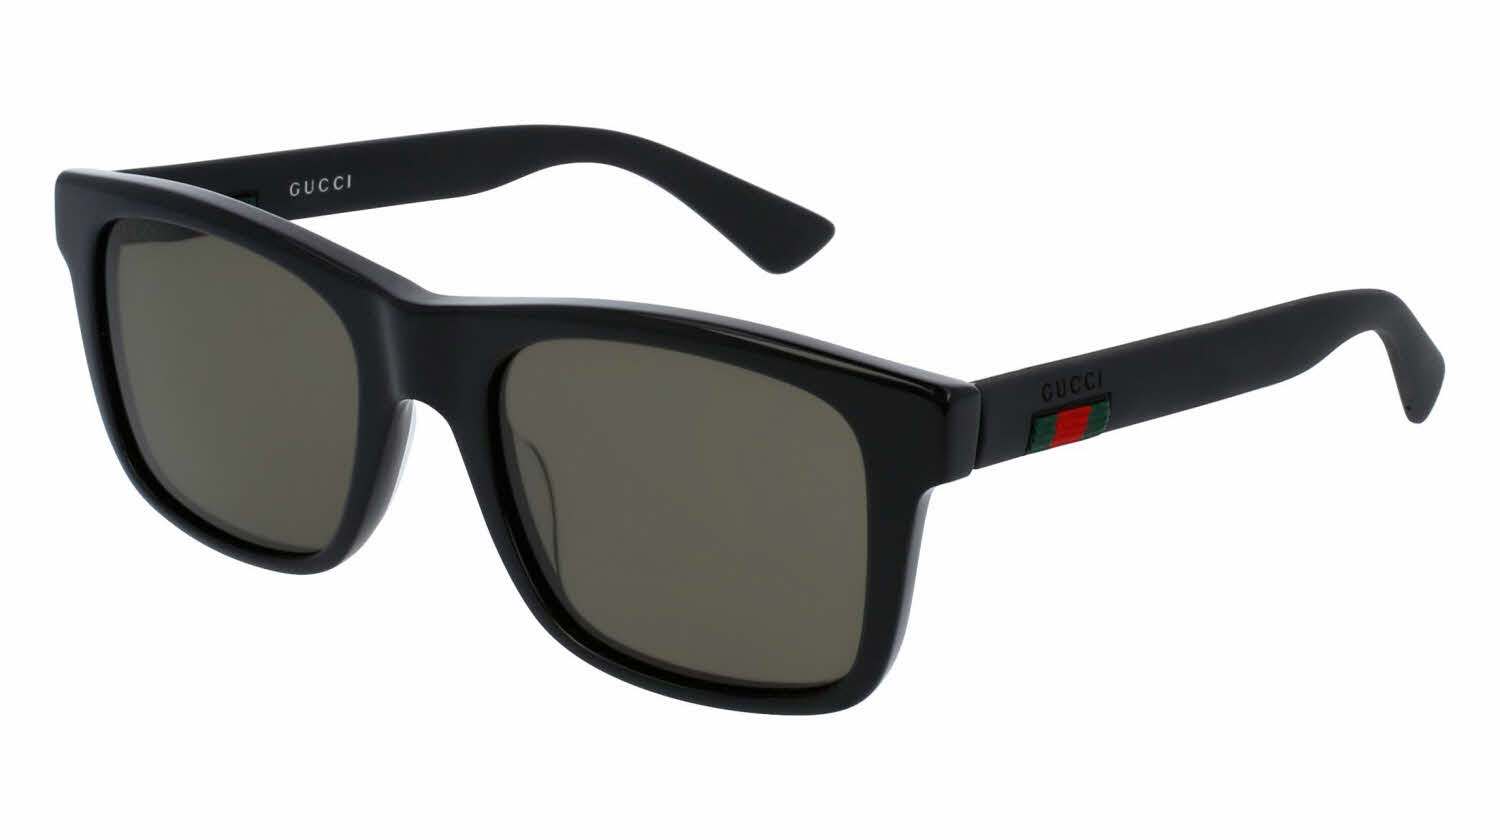 gucci sunglasses. gucci gg0008s sunglasses frames direct